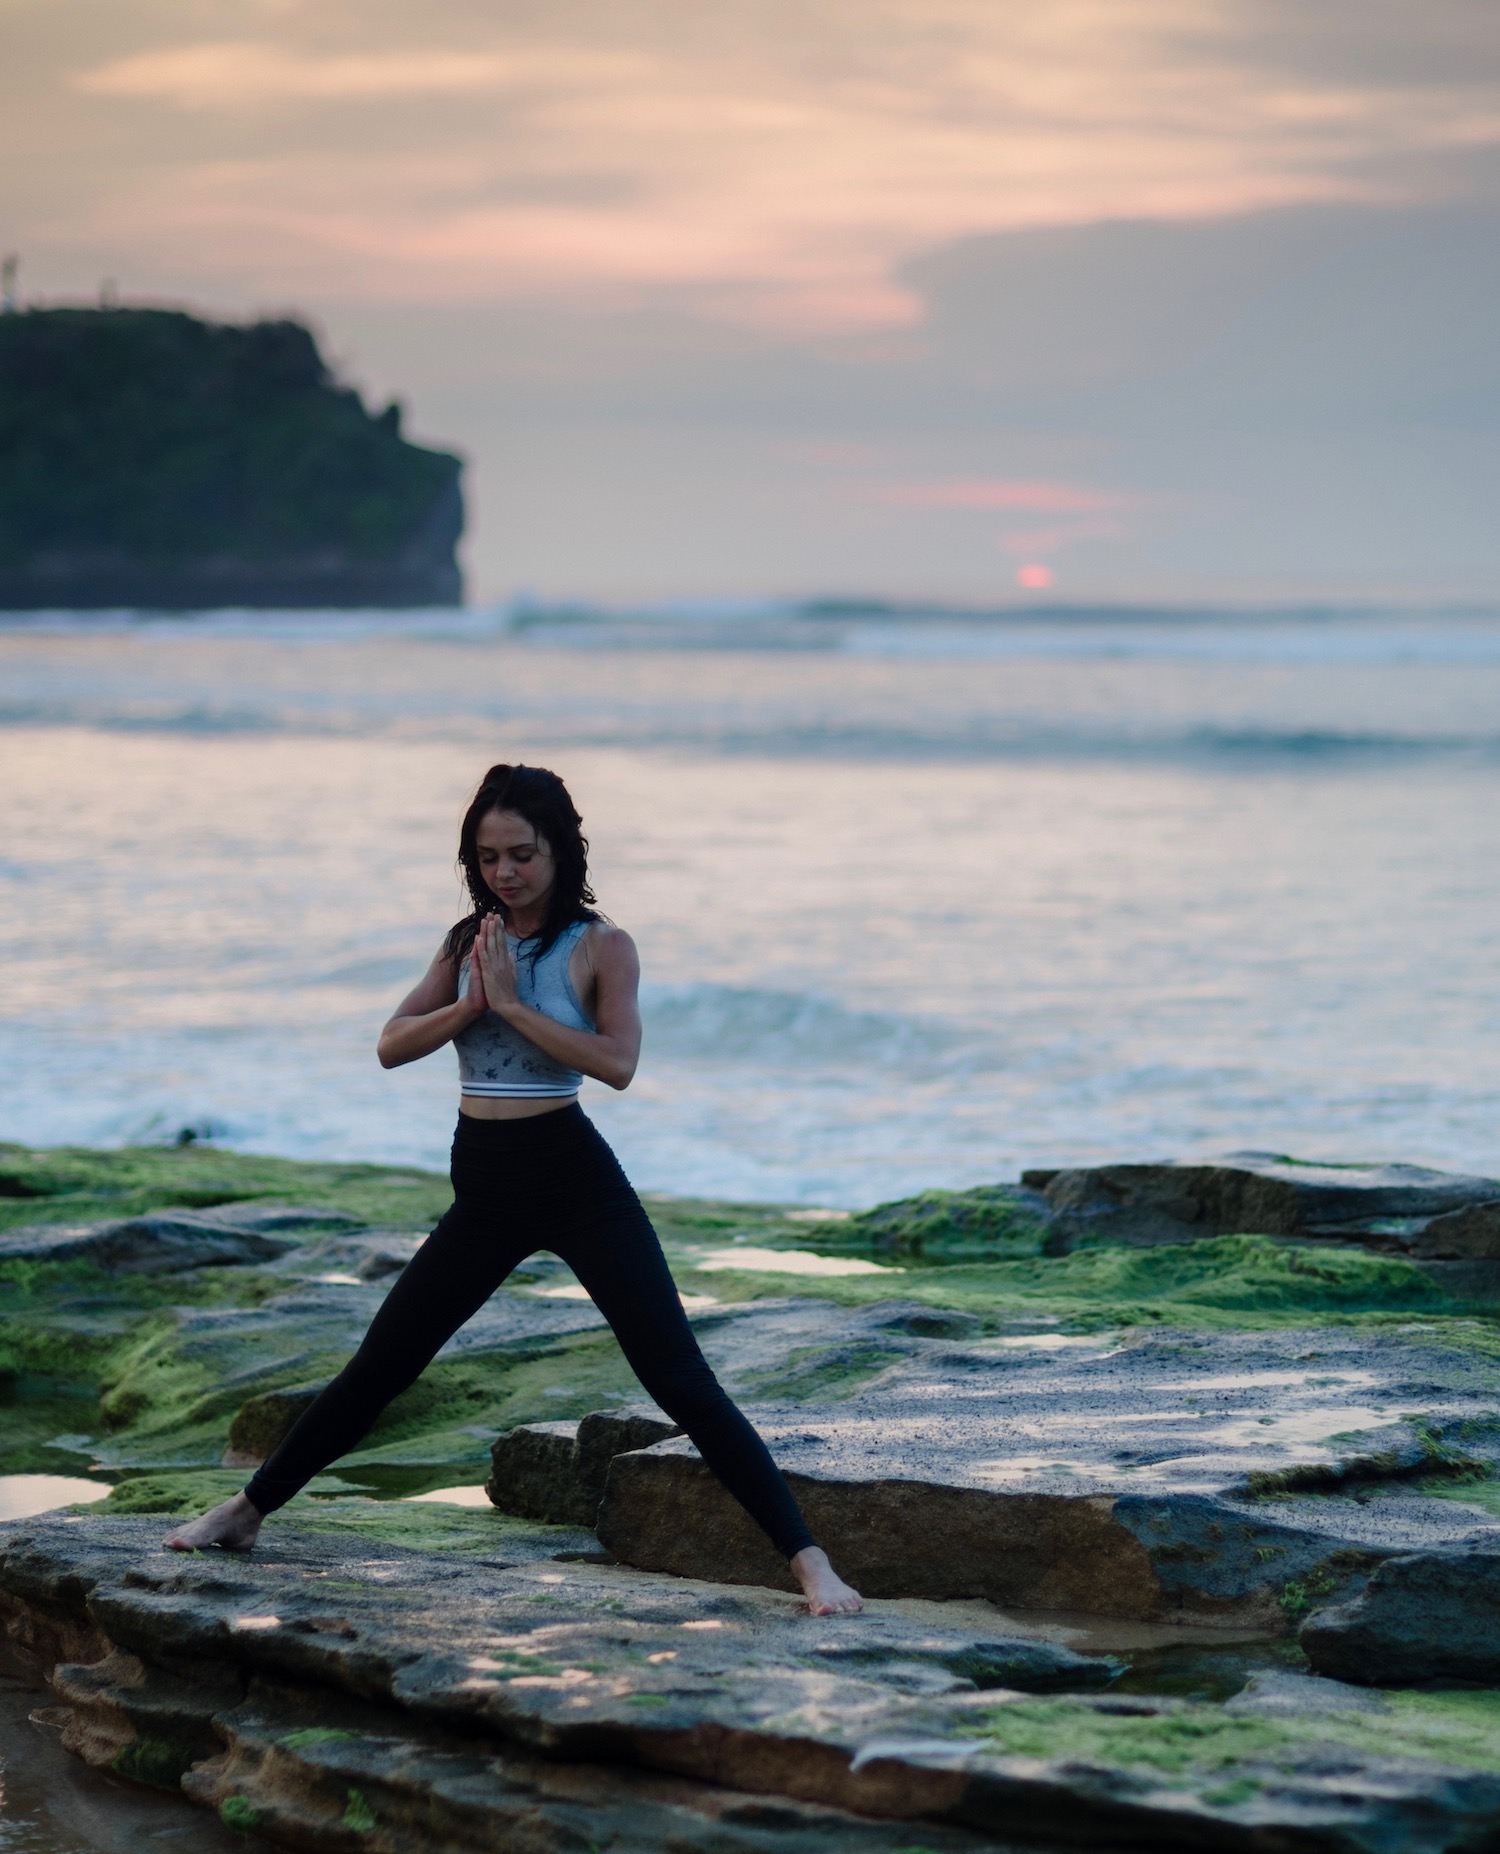 Barefooted woman on rocks surrounded by water doing yoga.